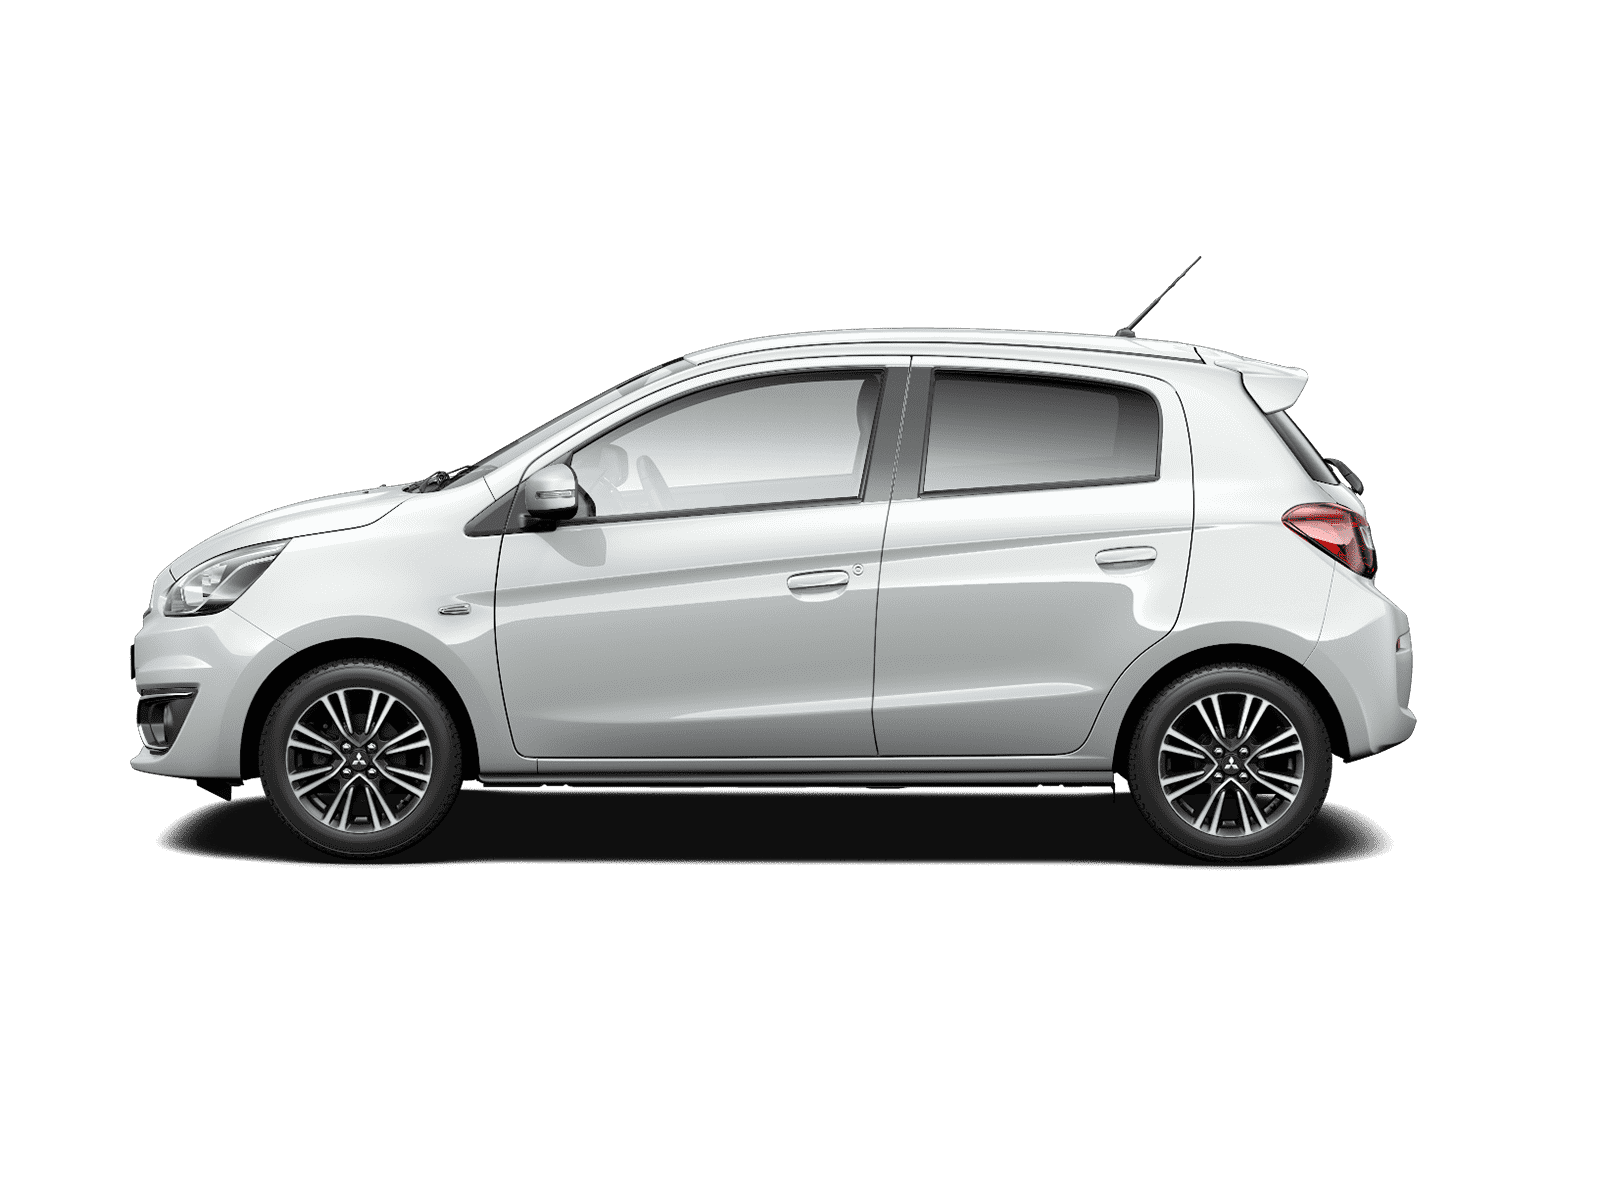 Mitsubishi Mirage Polar White